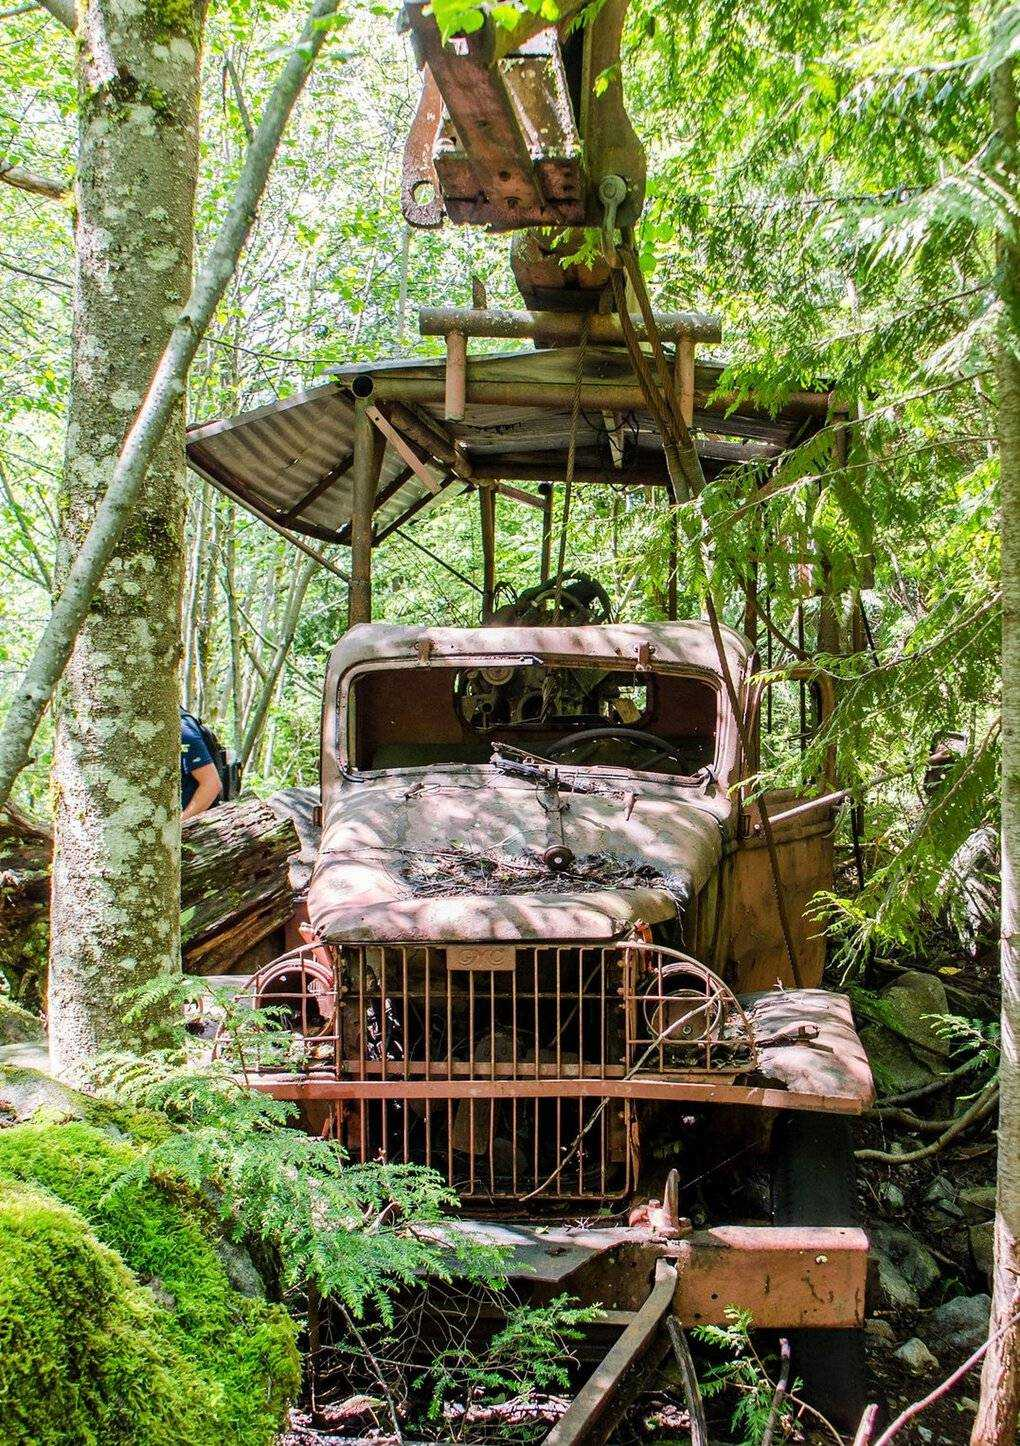 Dirty Harry's Peak is named after Harry Gault, who once ran a logging company in this mountainous region near the Snoqualmie Pass.  It takes some effort, but you can visit his old rusty truck.  (Nathan Barnes)